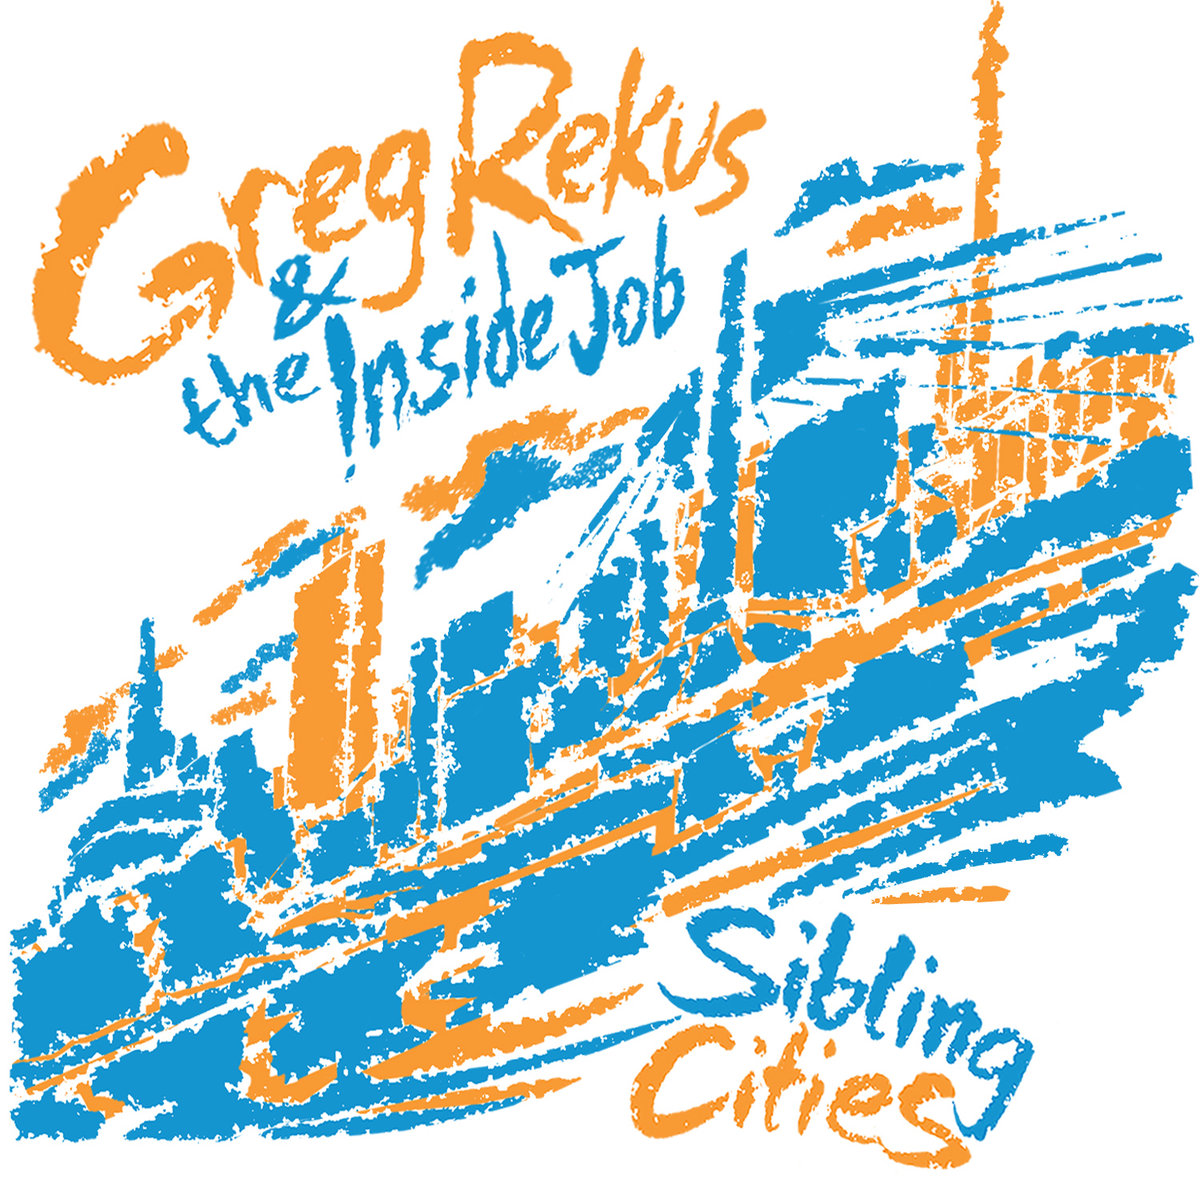 Greg Rekus & The Inside Job.jpg